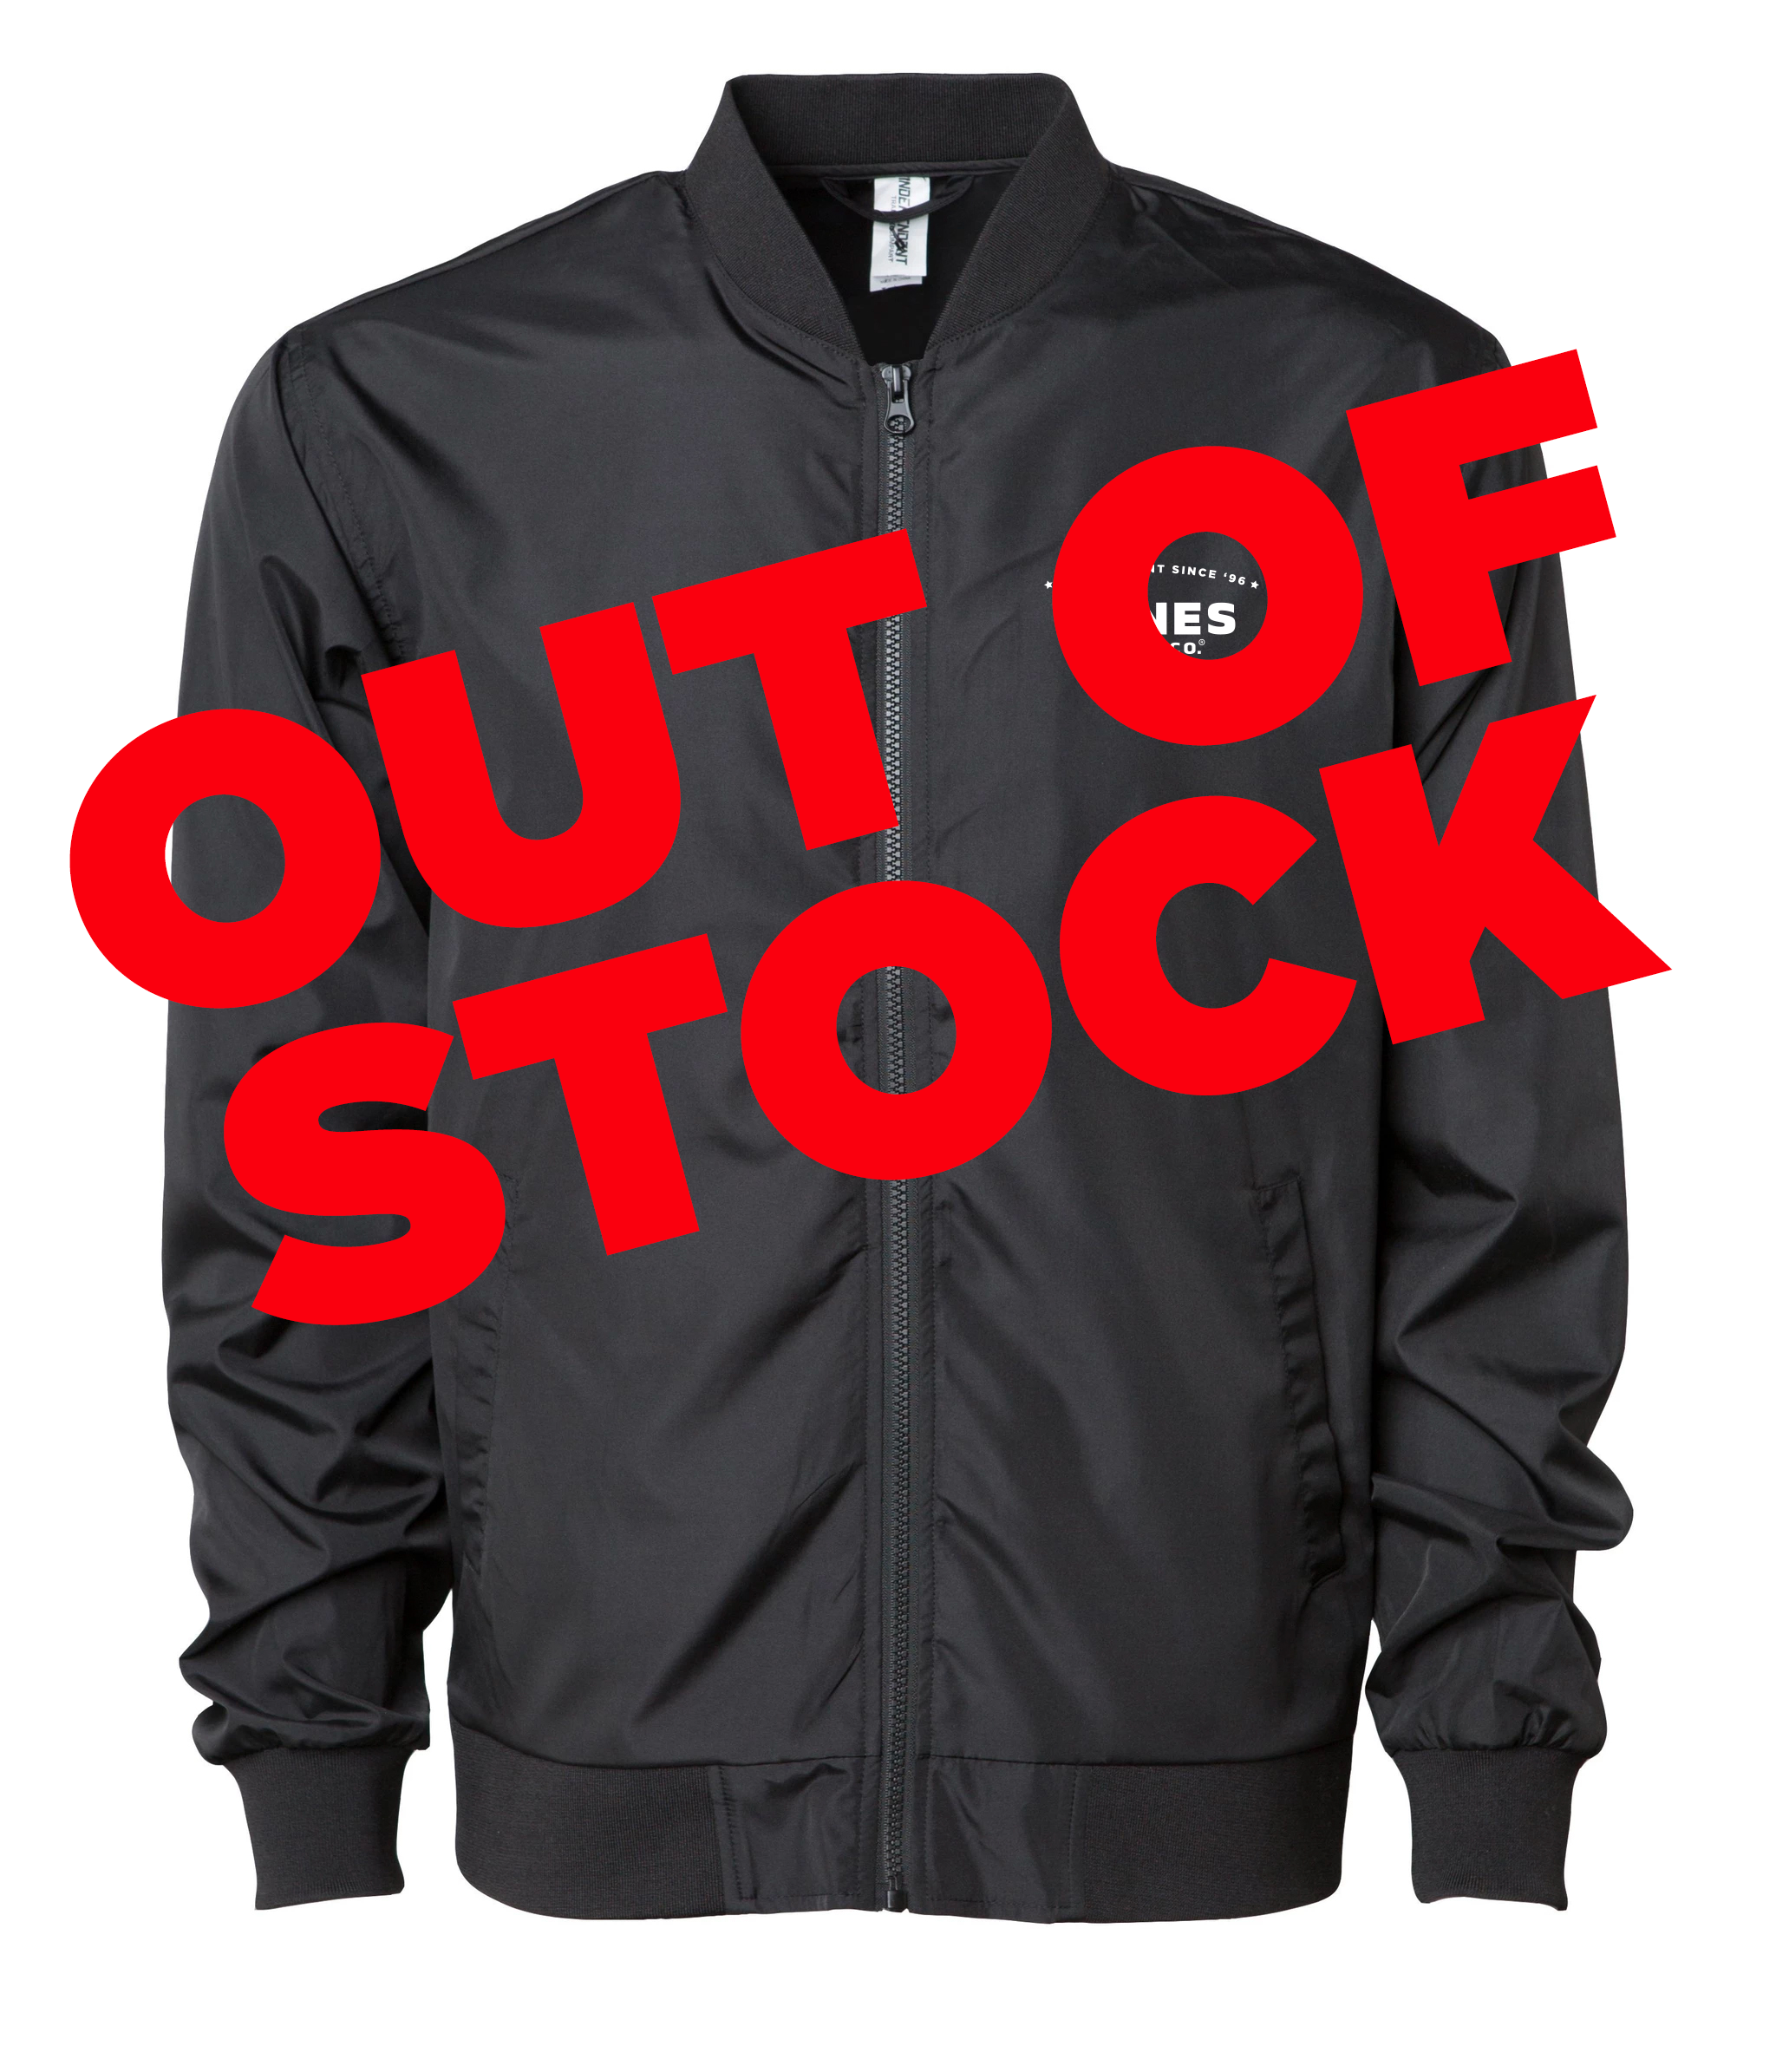 Out of stock Jones bomber jacket